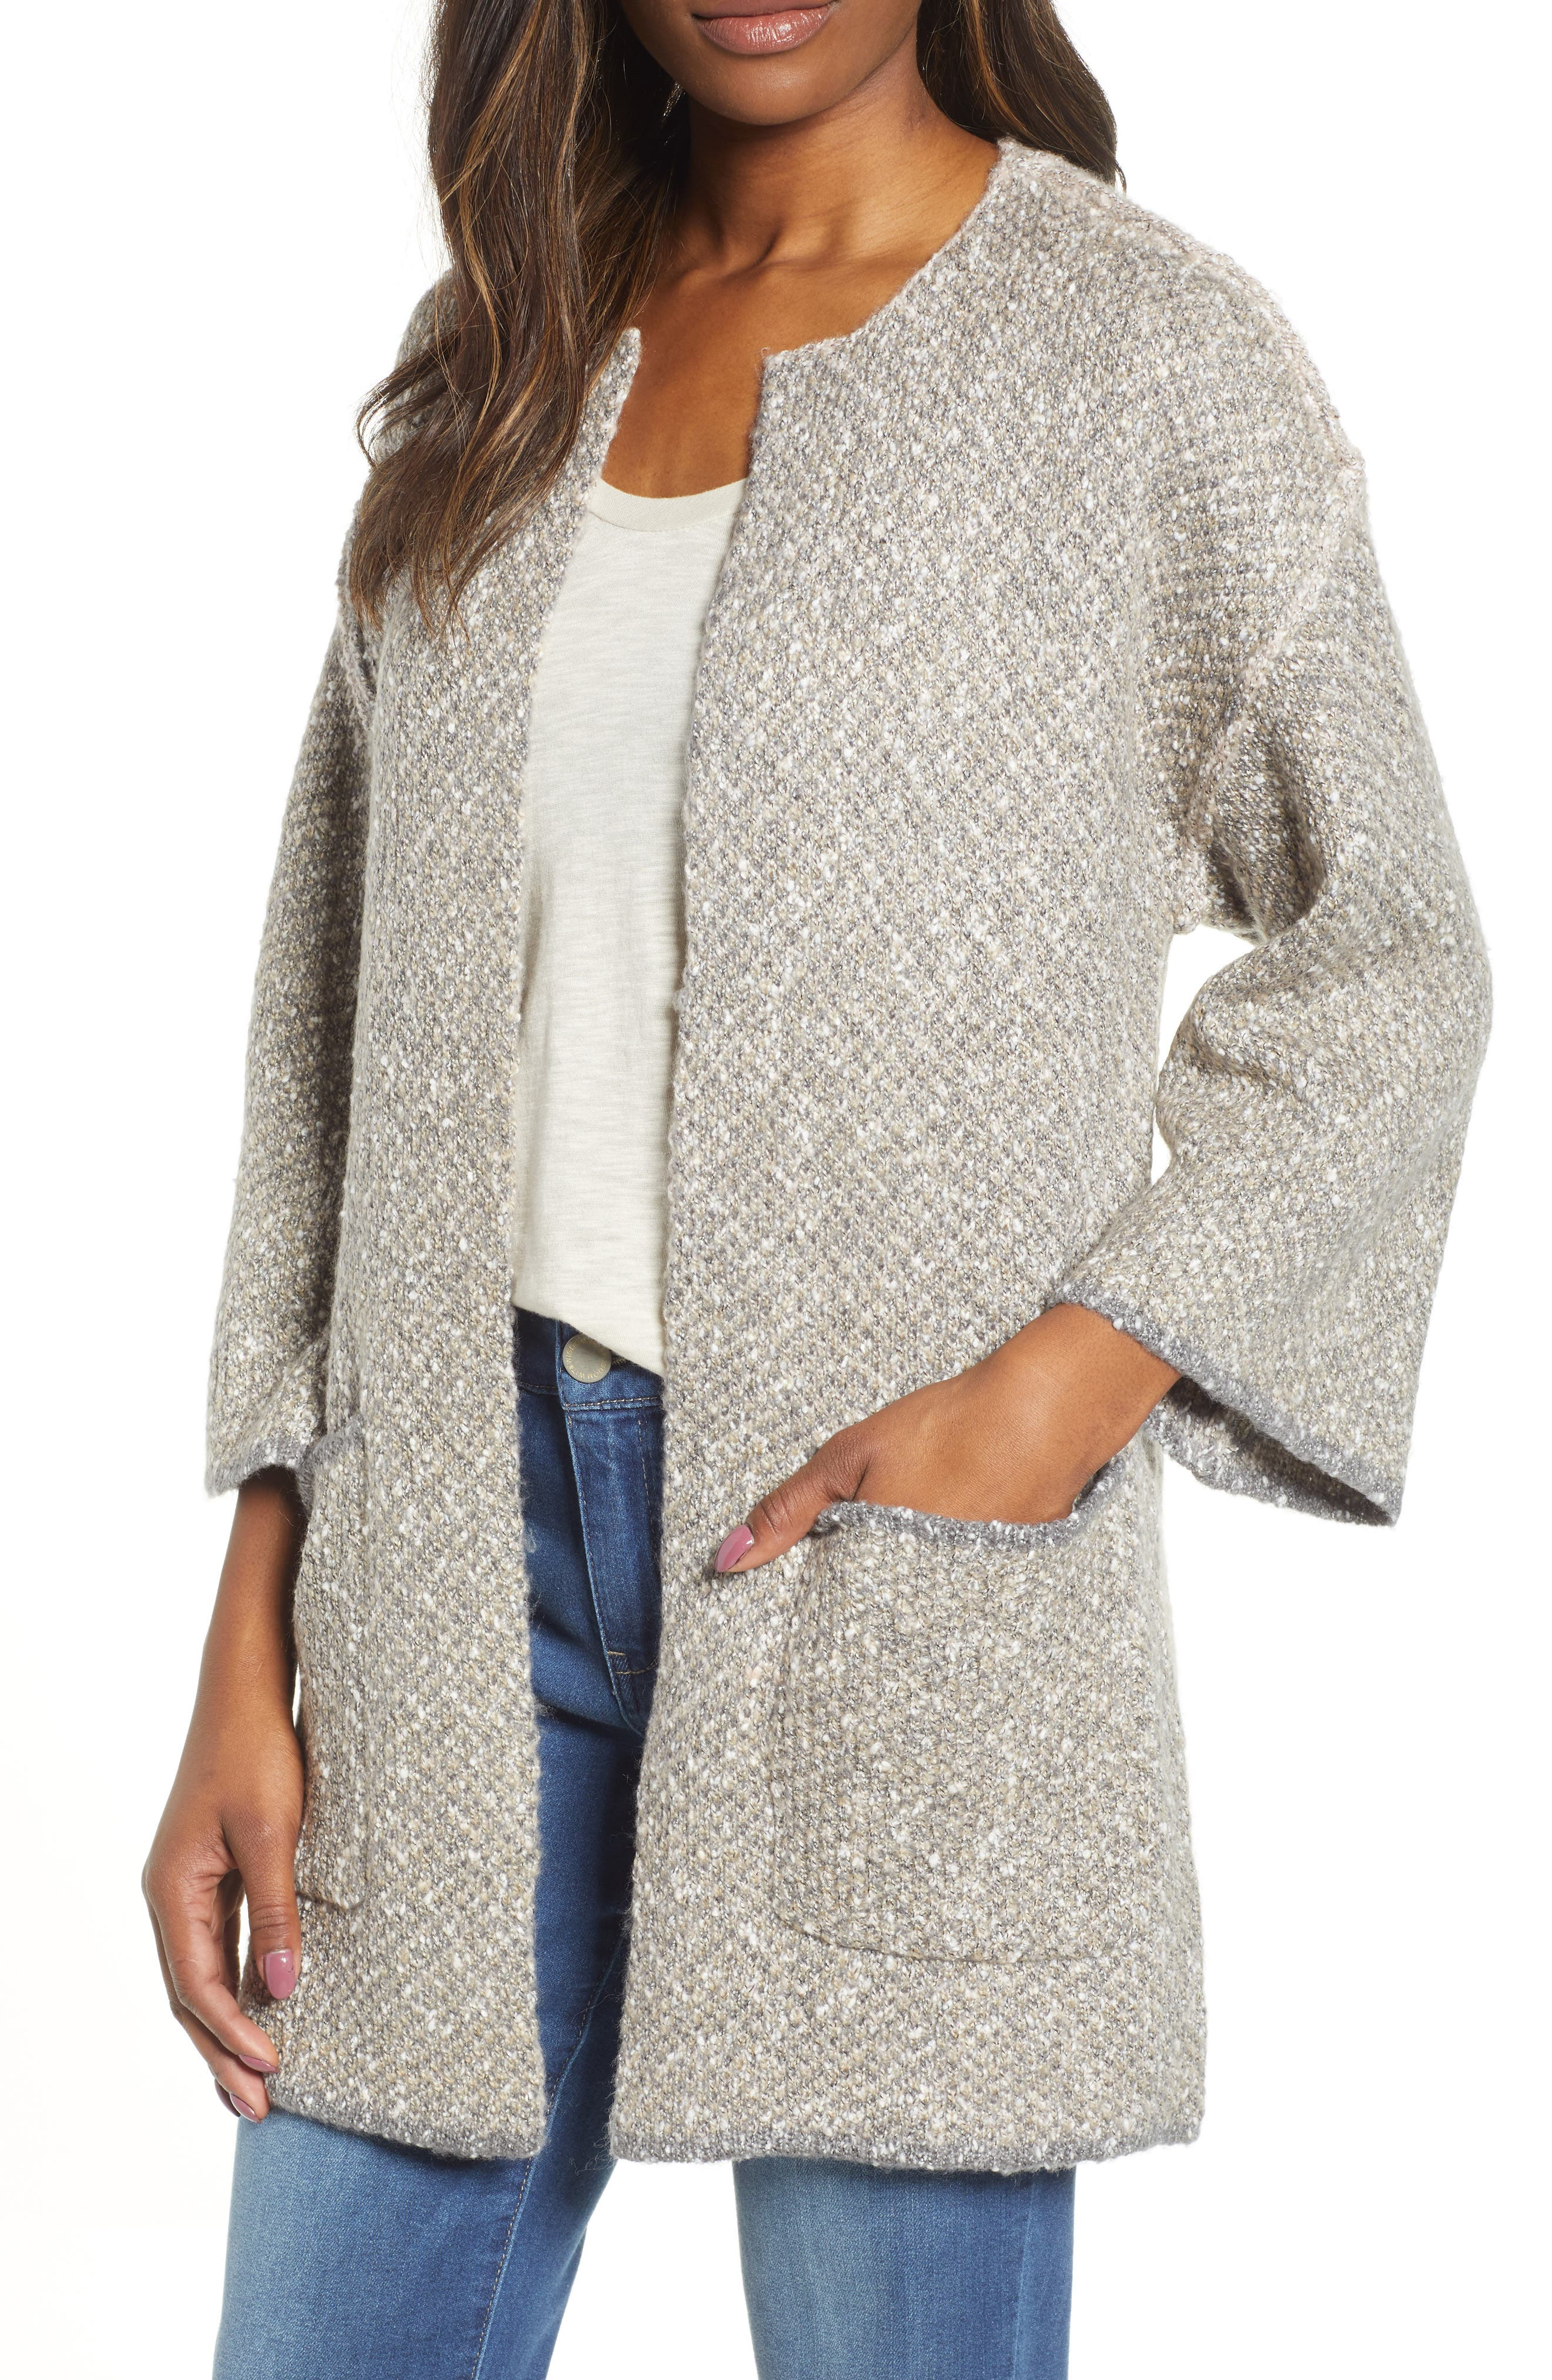 WIT & WISDOM Reversible Leopard Jacquard Sweater Jacket, Main, color, OATMEAL